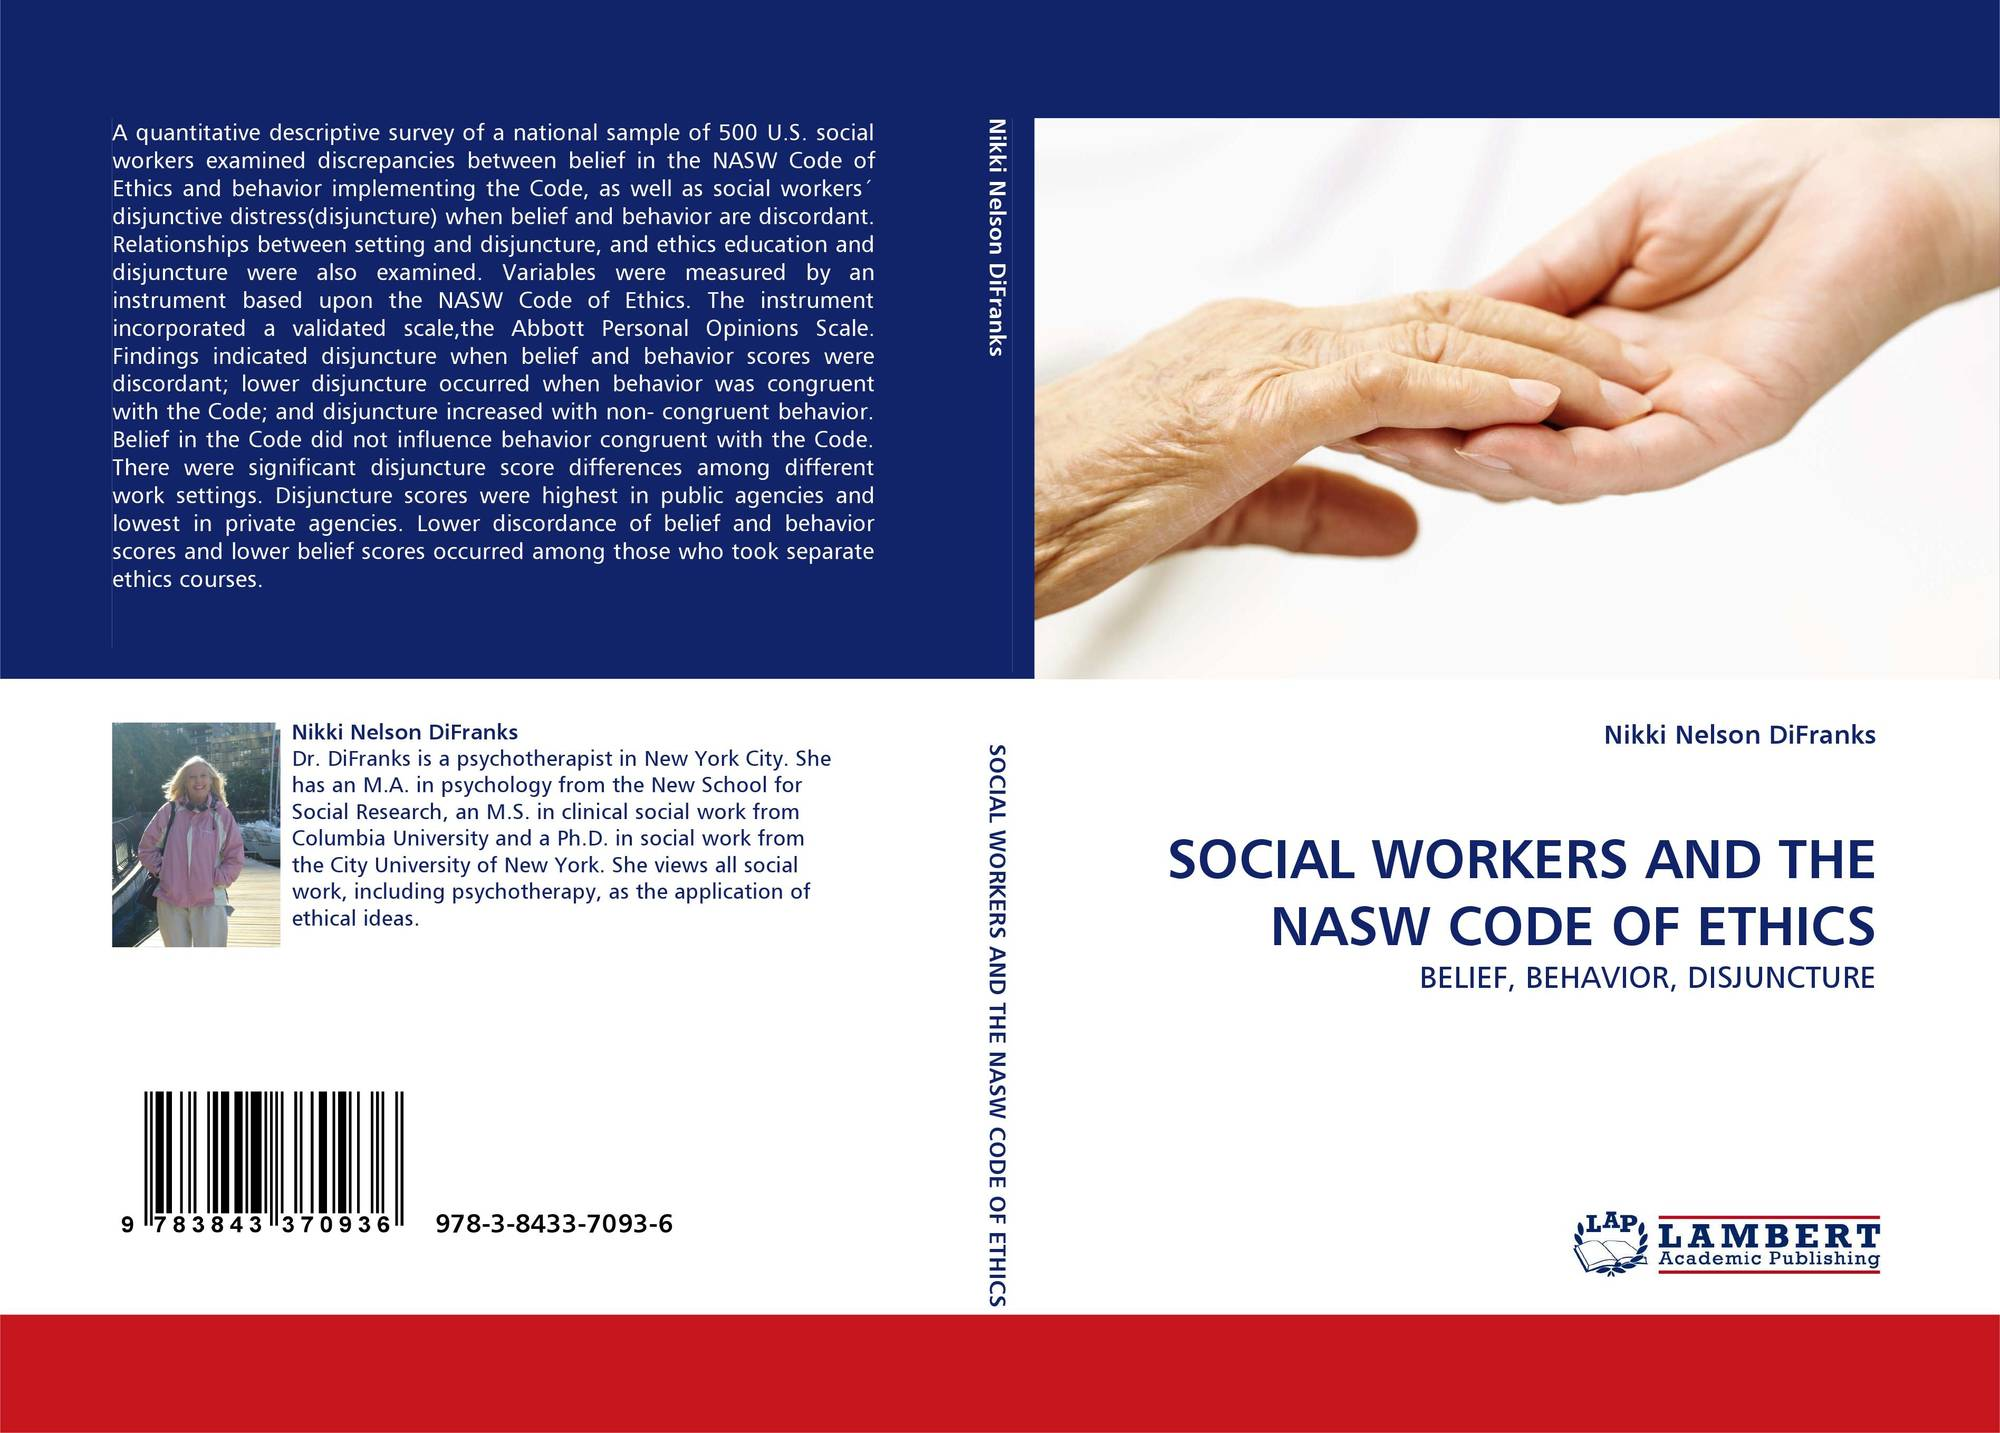 college essay code ethics social workers pros and cons Social workers can be instrumental in helping hospitals, nursing homes, home care agencies, and other health care organizations resolve complex cases with ethical dimensions one way of contributing is though involvement with the ethics committee.